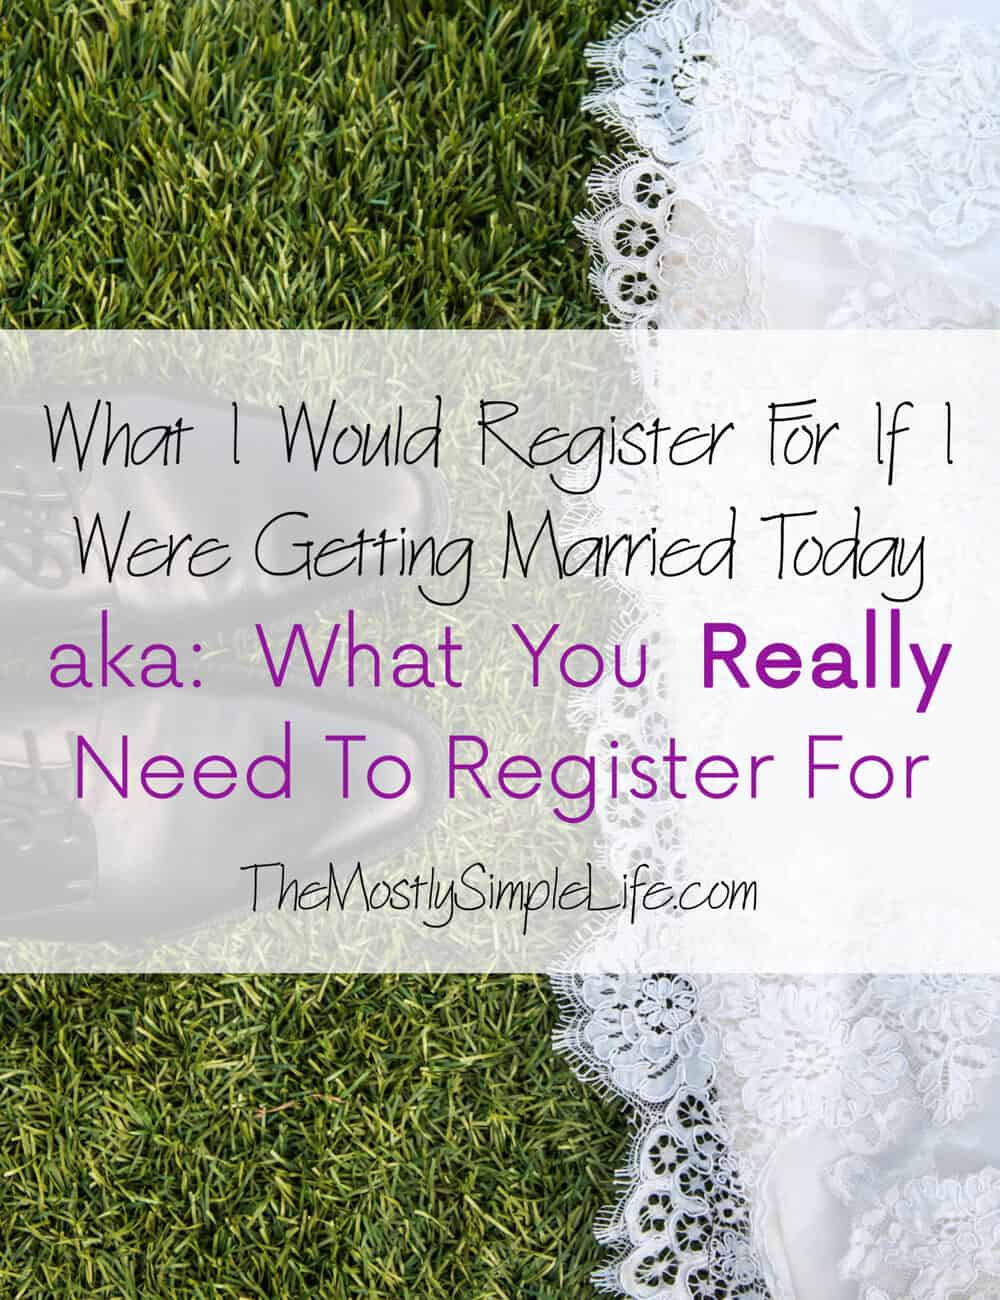 What You Really Need To Register For Kitchen Stuff The Mostly